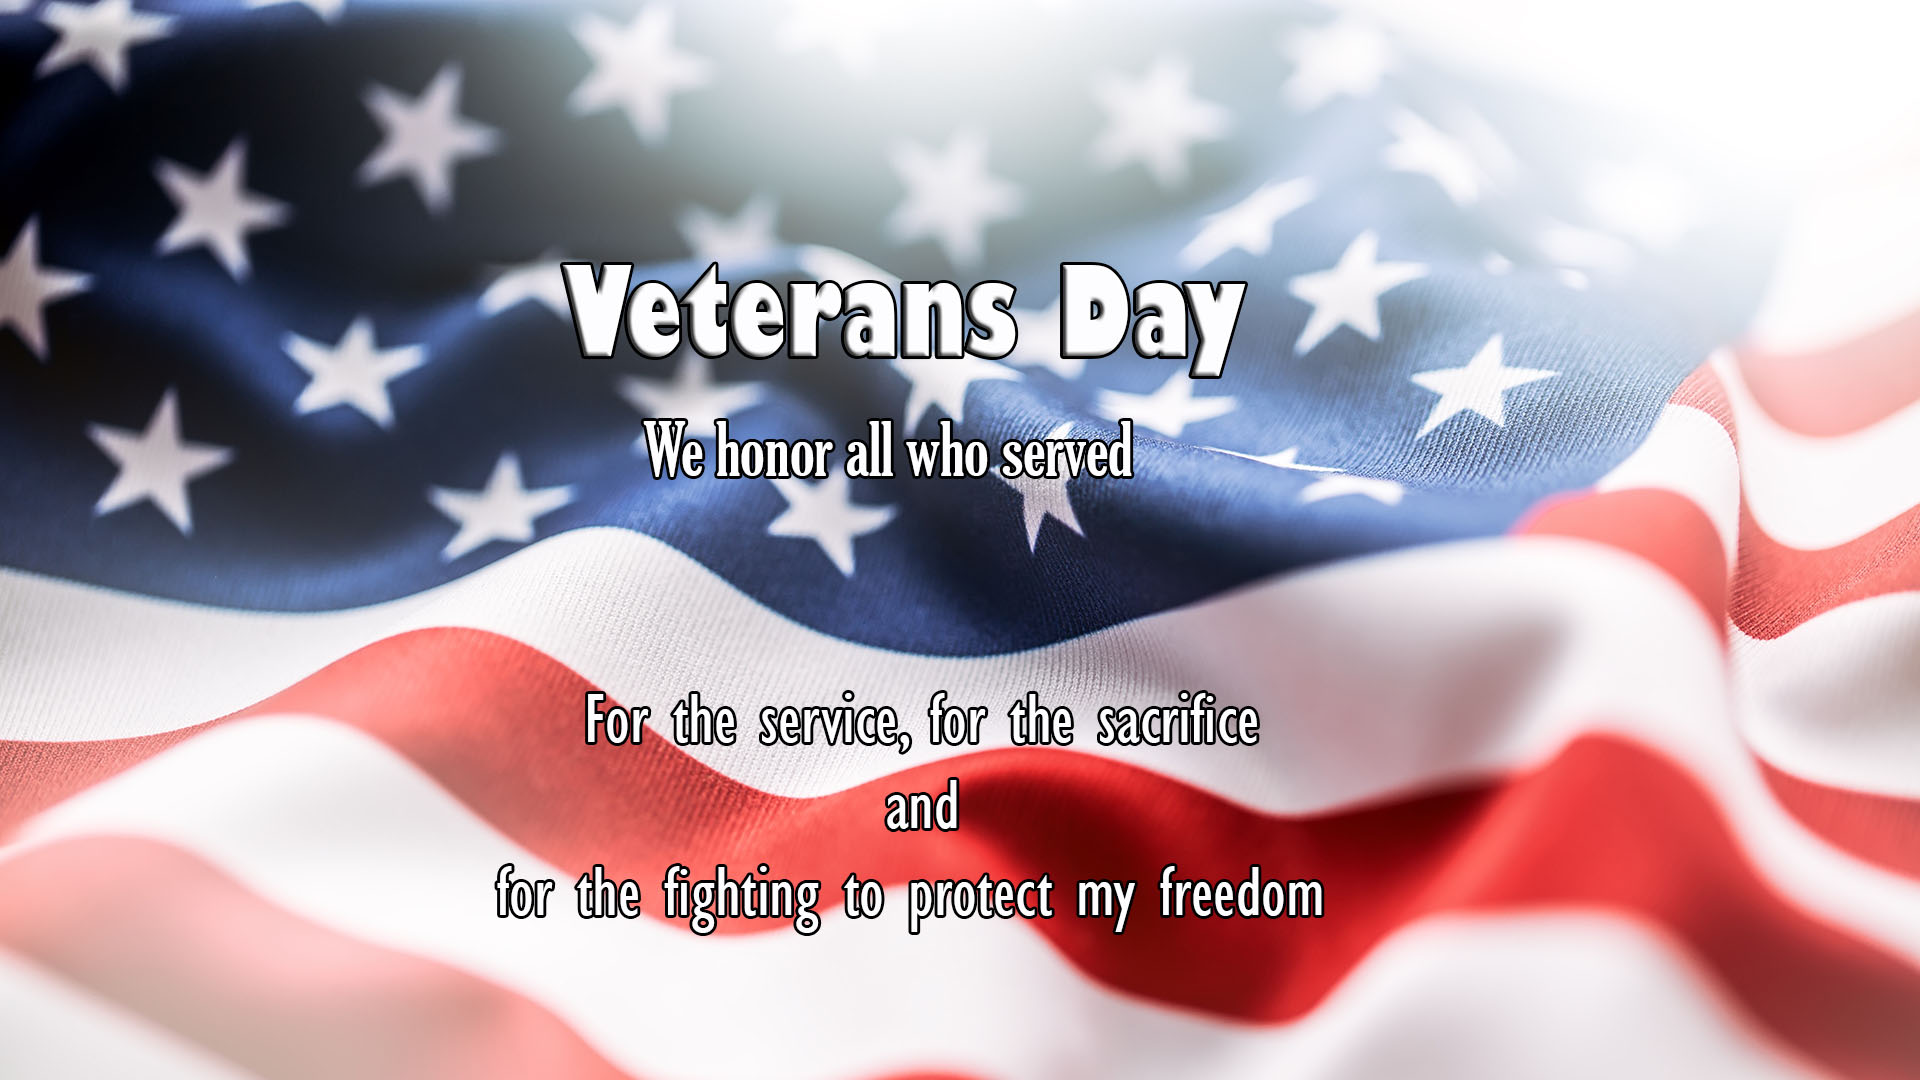 happy-veterans-day-hd-wallpapers-images-quotes-wishes-cards-2017